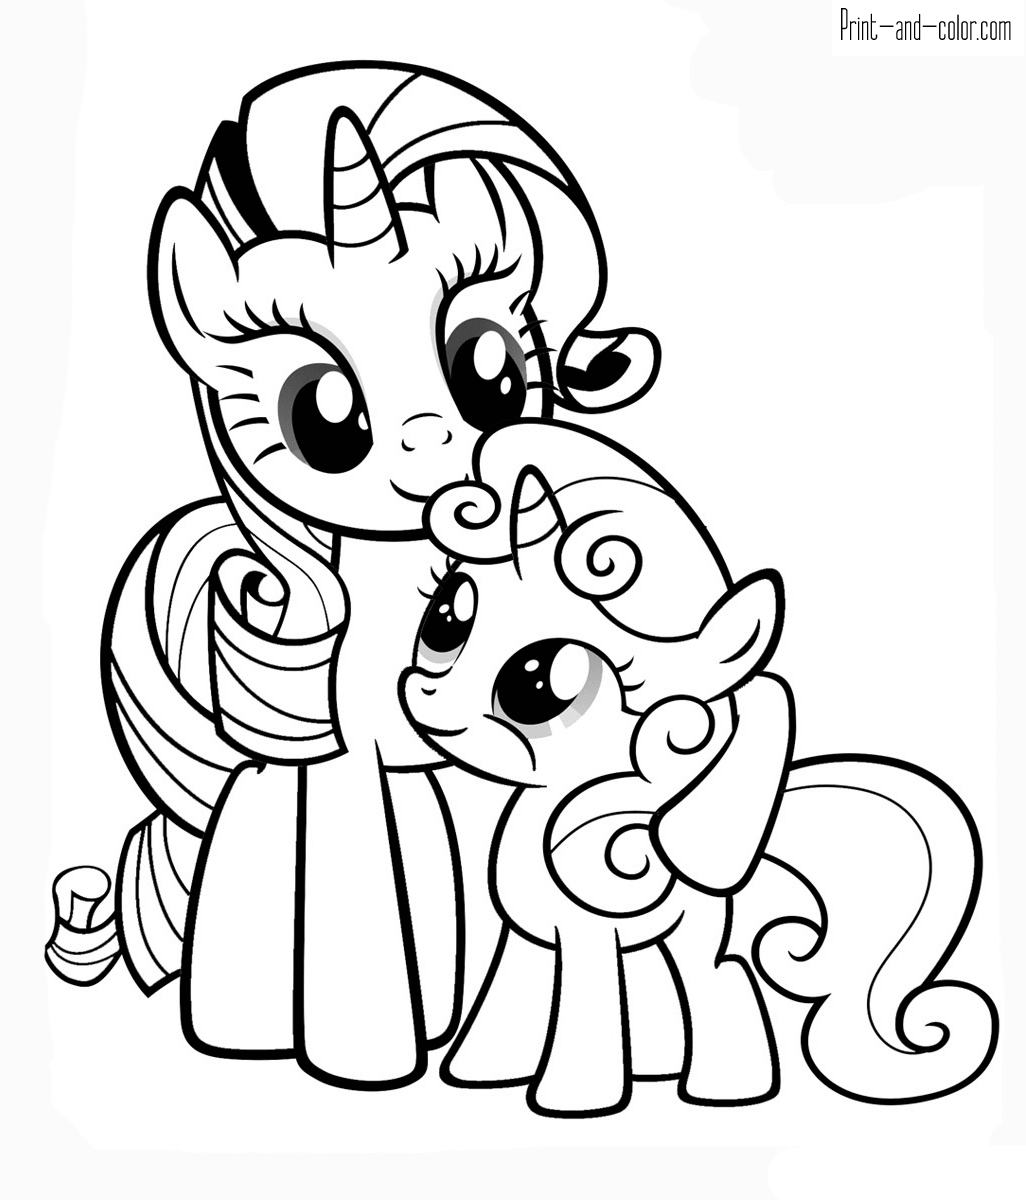 mlp coloring page my little pony coloring pages page mlp coloring 1 1